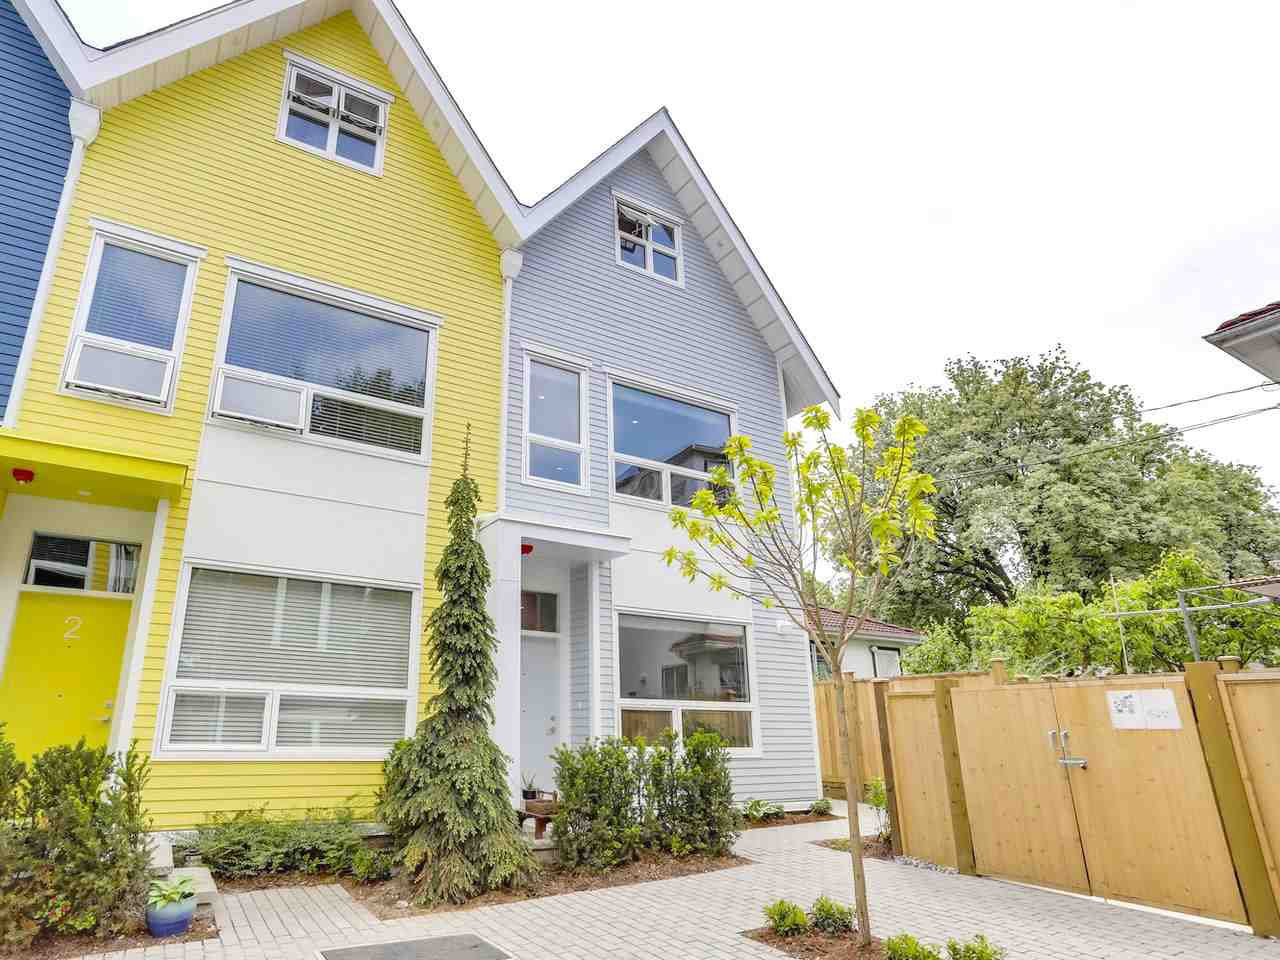 """Main Photo: 1 1322 E 23RD Avenue in Vancouver: Knight Townhouse for sale in """"DICKENS AT KENSINGTON"""" (Vancouver East)  : MLS®# R2270484"""